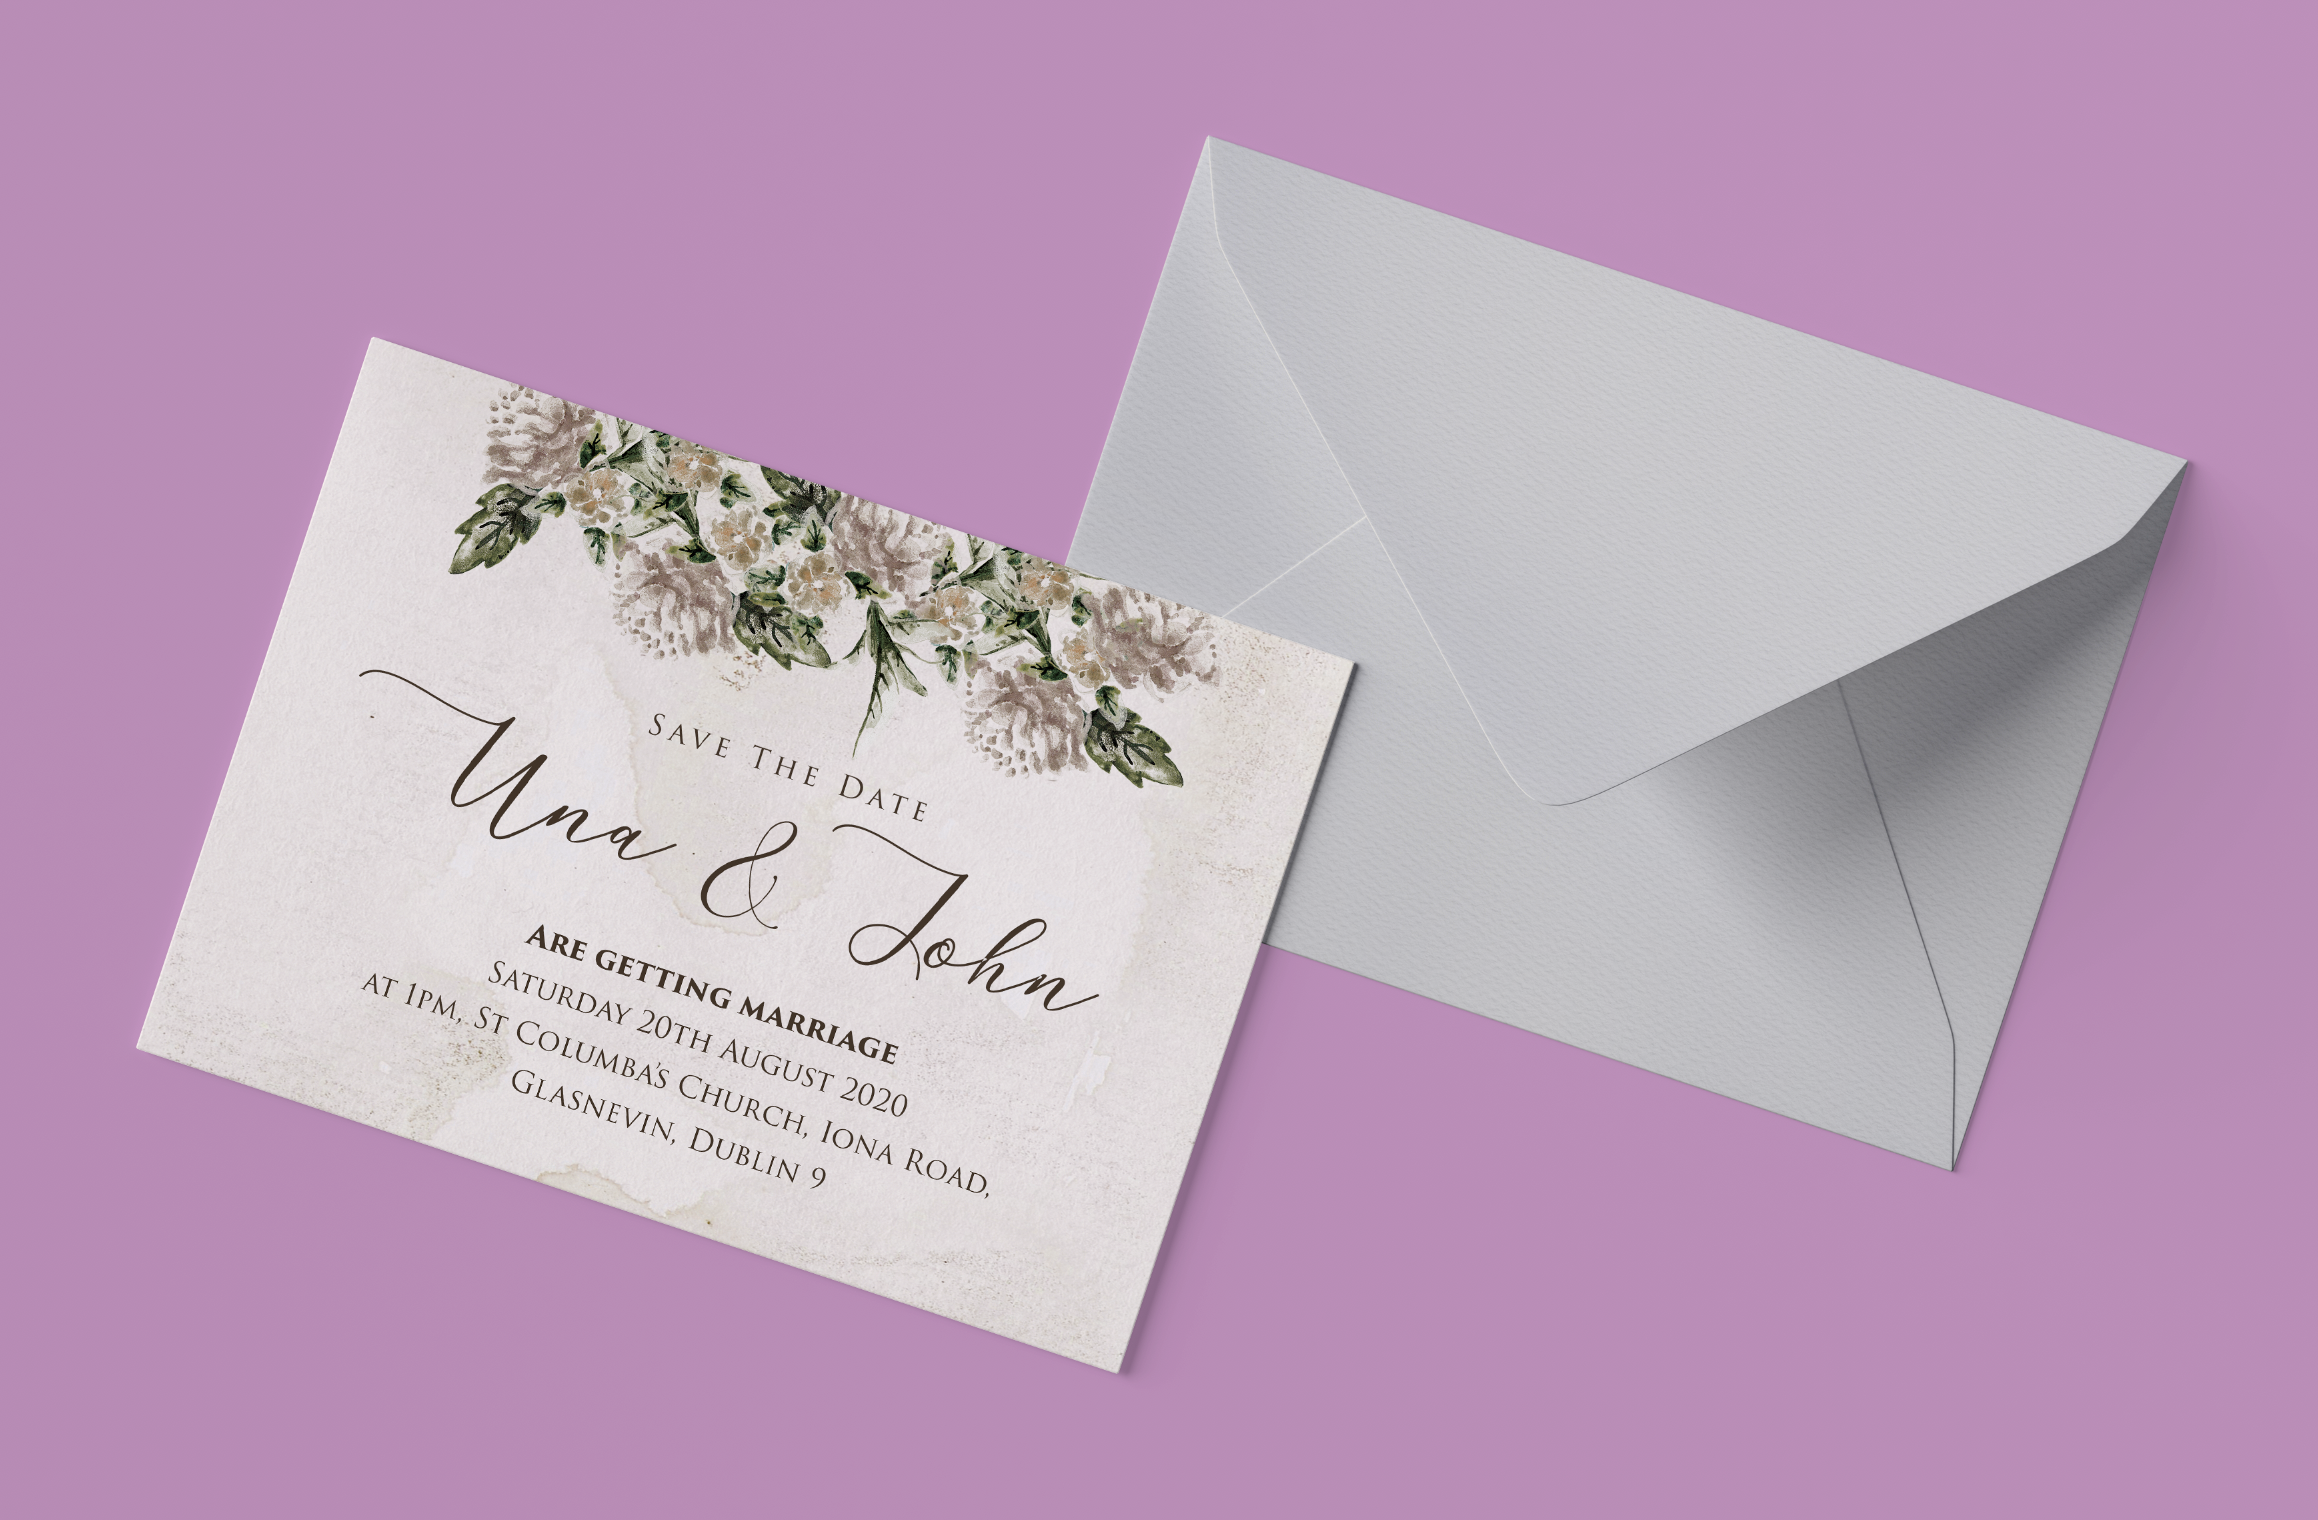 Dublin Printers - Wedding Save the Dates